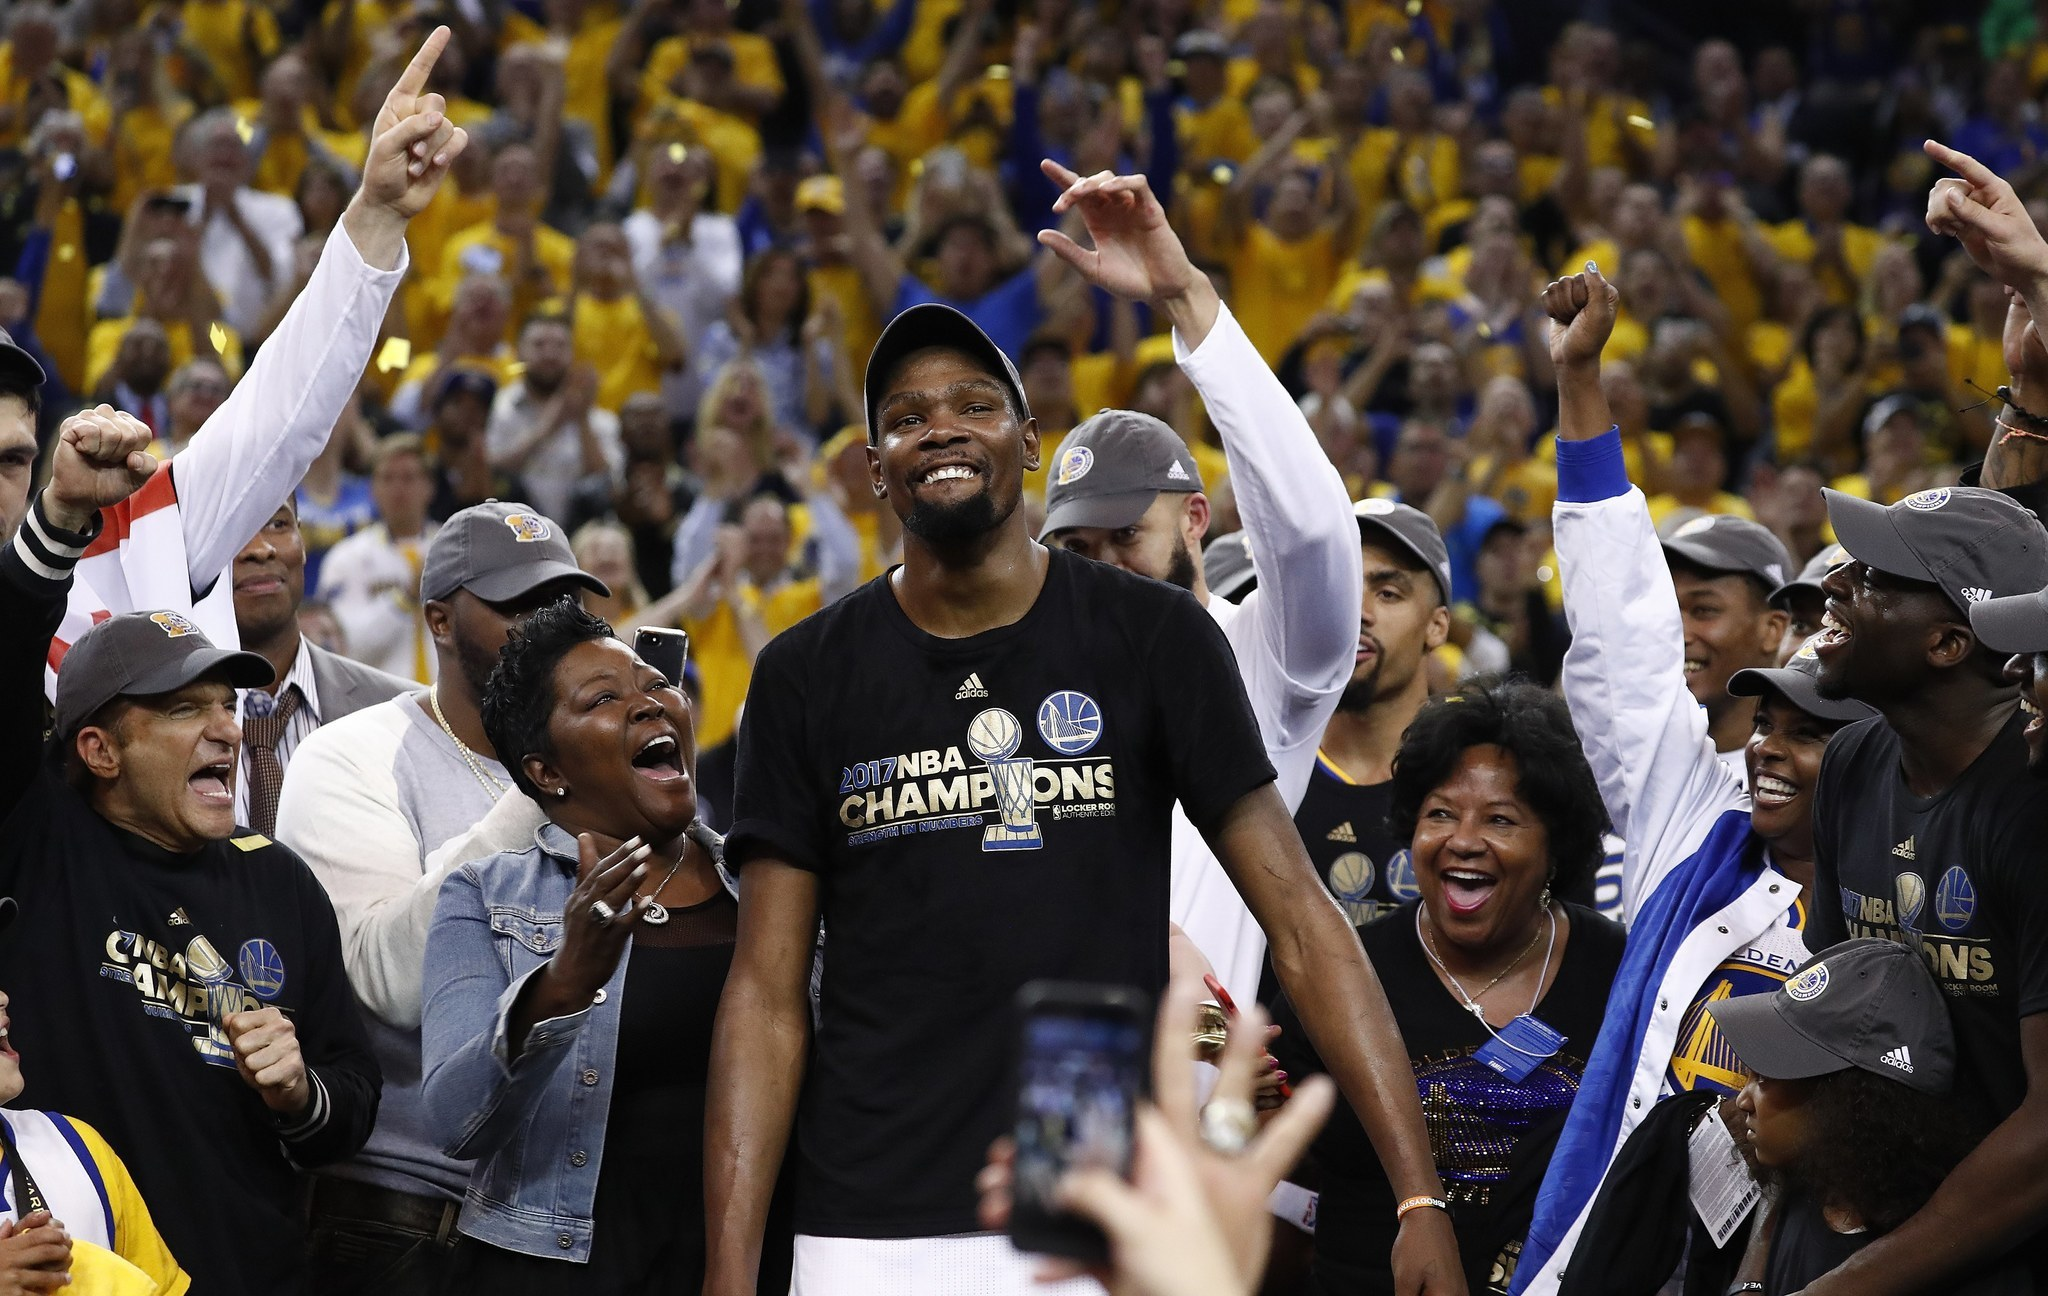 d9e2721ba66e Kevin Durant deserves respect — not criticism — for chasing NBA  championship ring - Chicago Tribune